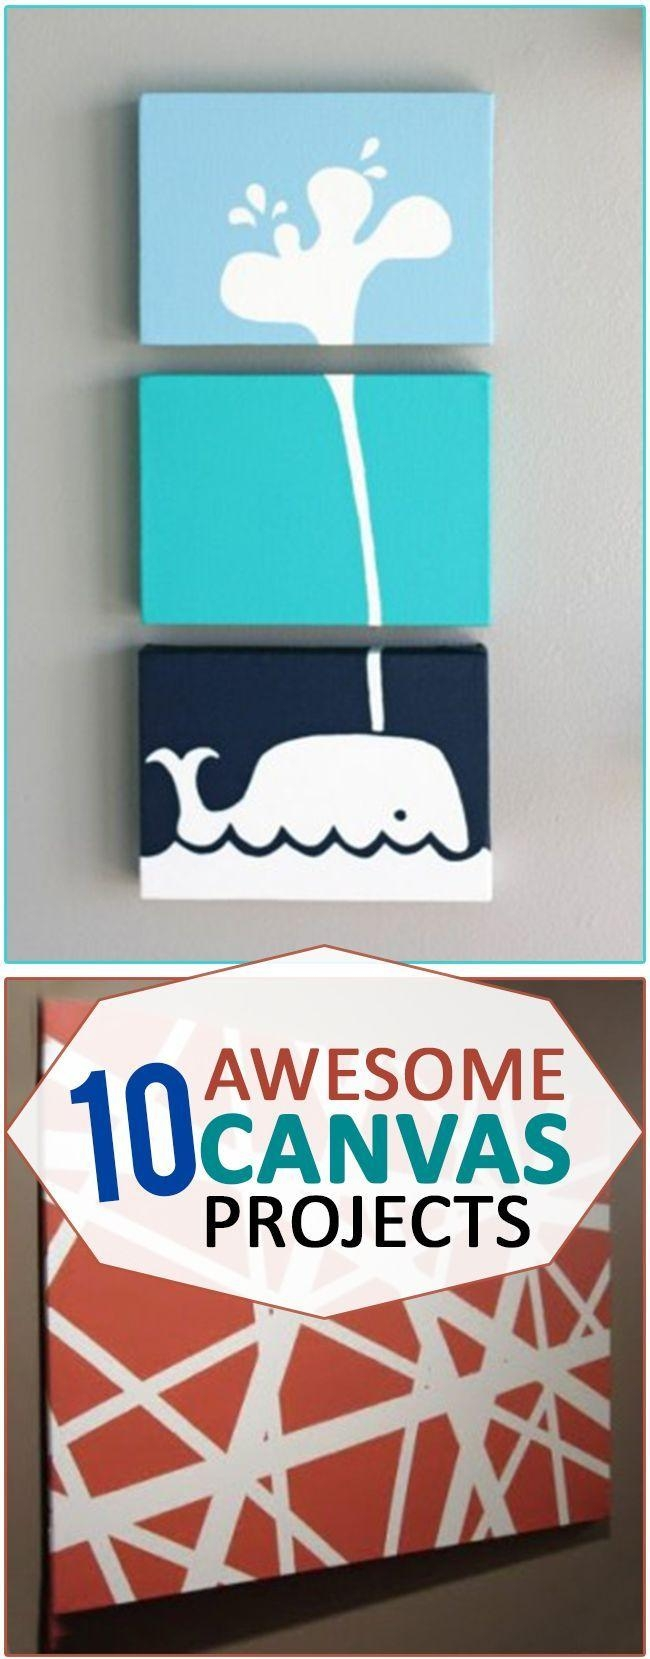 Best 25+ Diy Canvas Ideas On Pinterest | Diy Canvas Art, Puffy With Diy Pinterest Canvas Art (View 6 of 20)